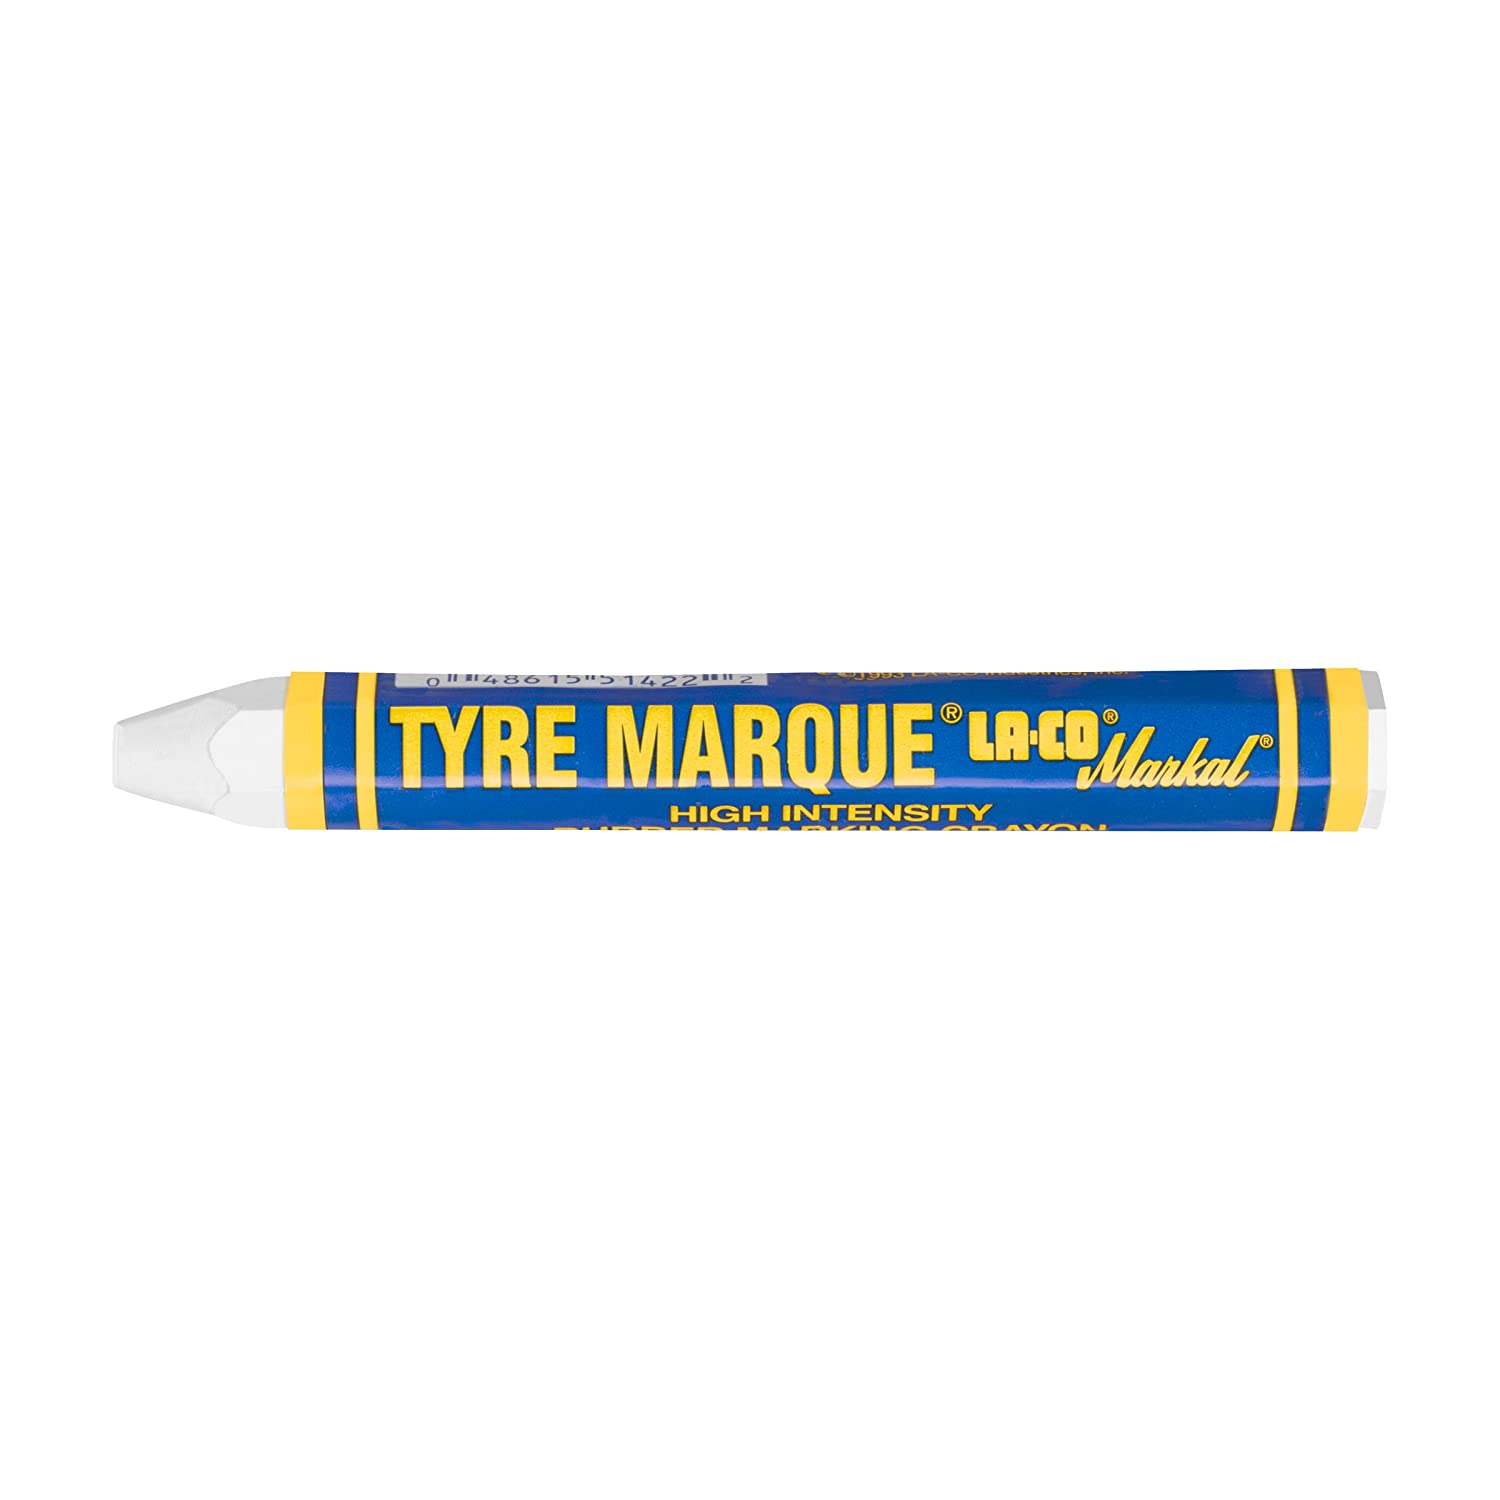 Markal Tyre Marque Tire Marking Crayon for Temporary Tire Marking